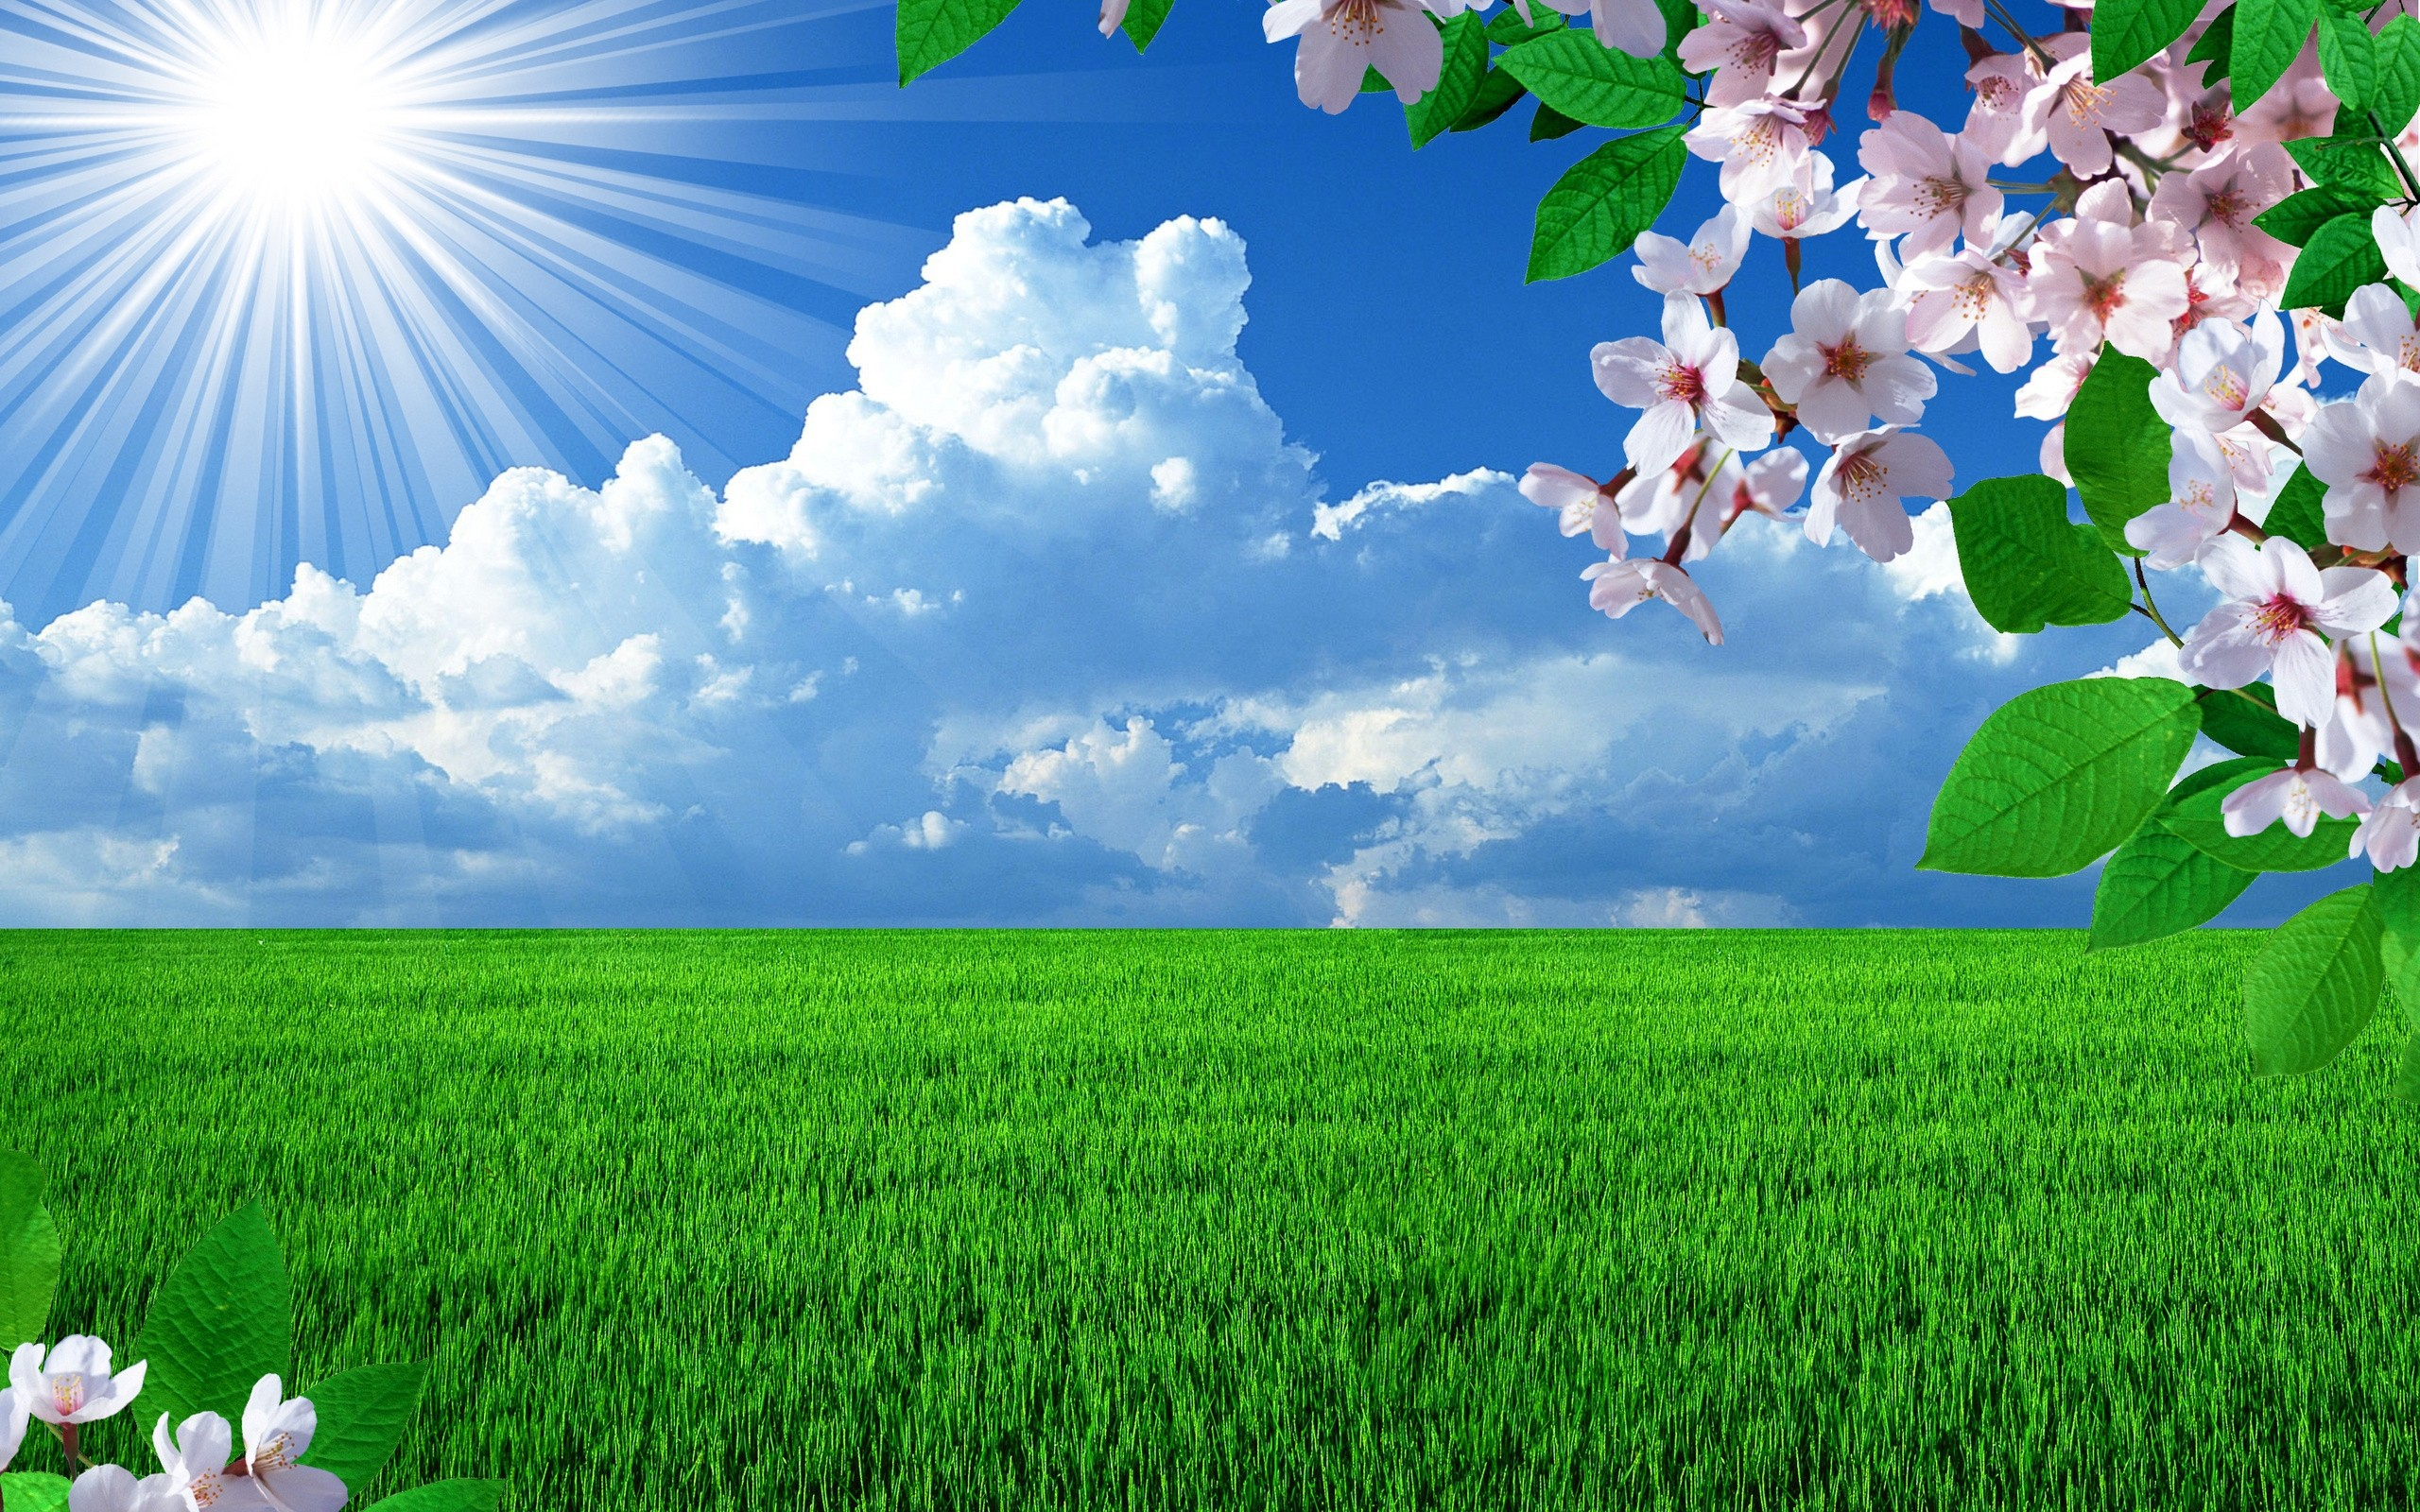 So Beautiful Hd Wallpaper Free Spring Season